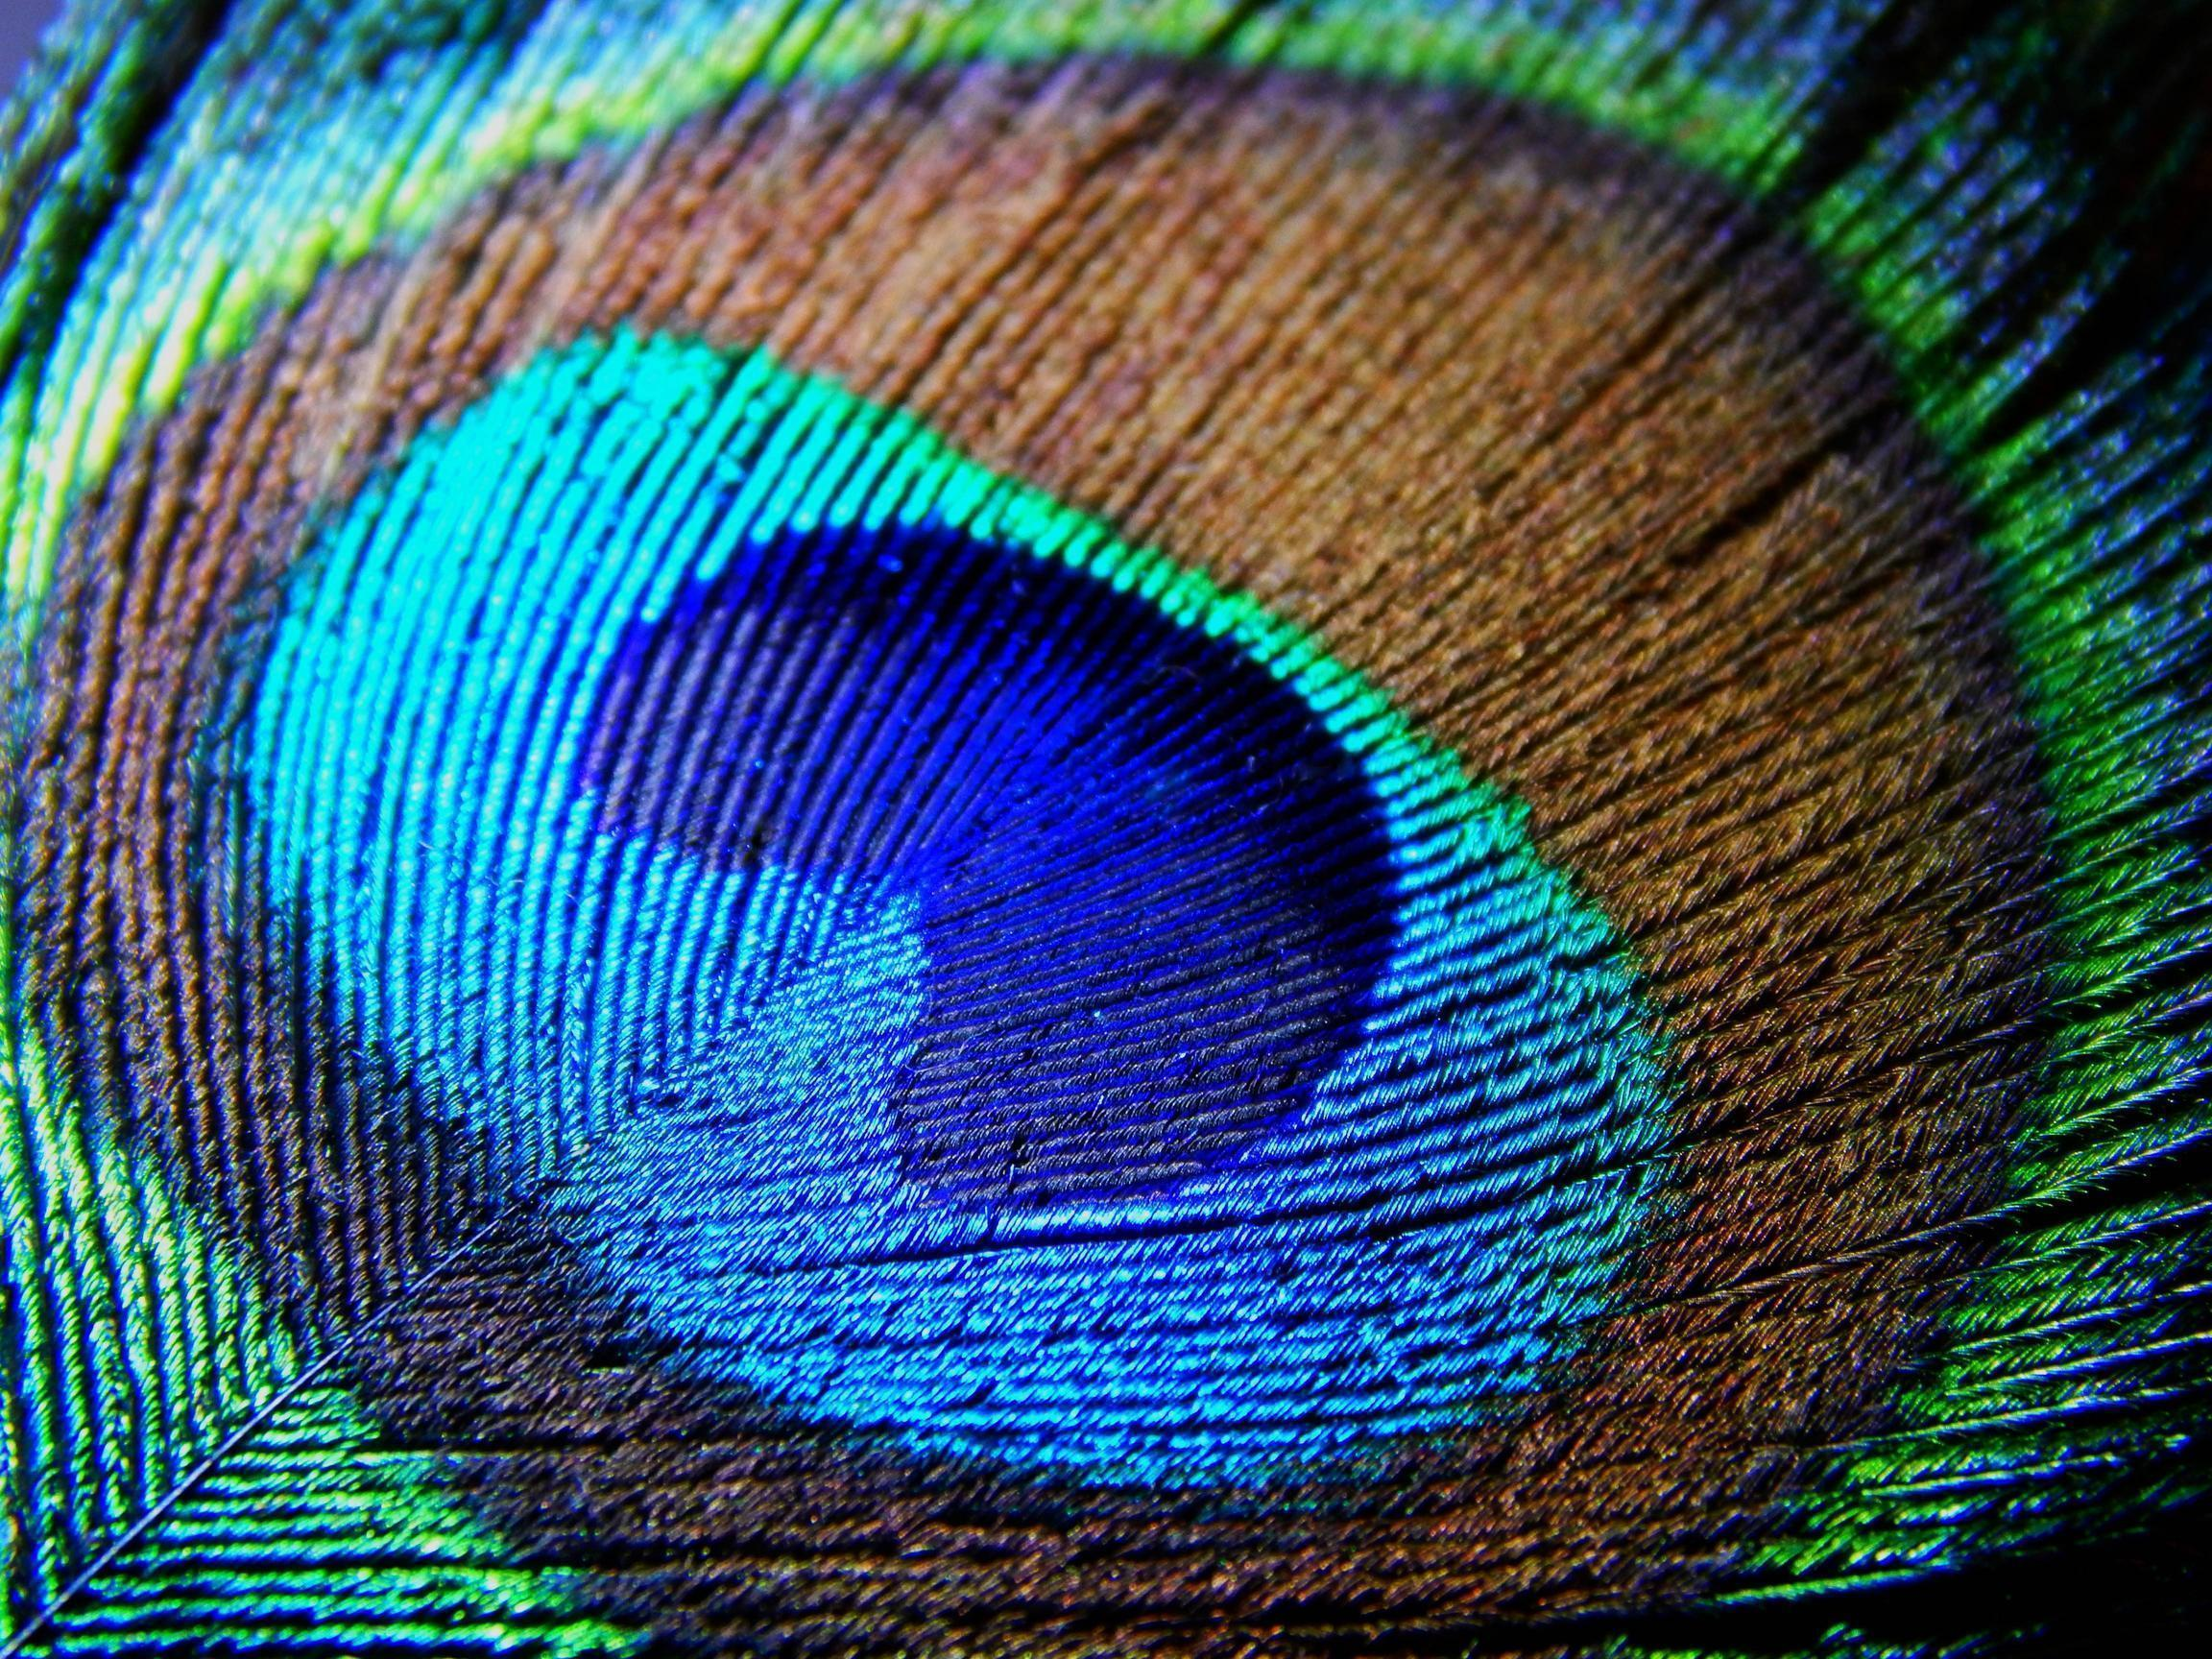 Peacock Feather Backgrounds